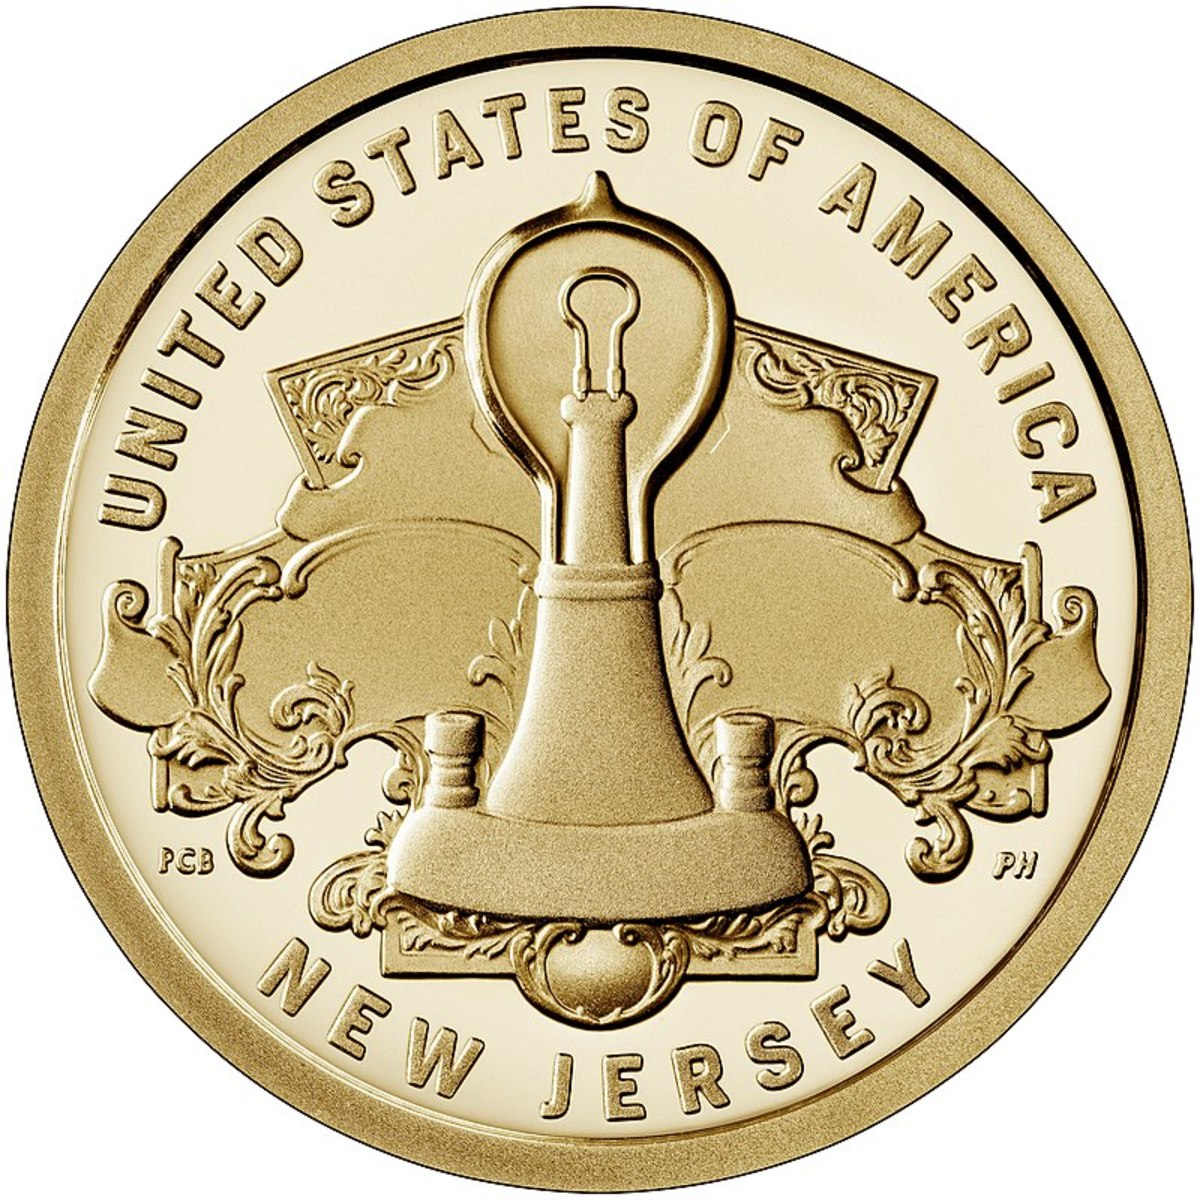 2019 New Jersey Innovation dollar coin honoring the invention of the light bulb.